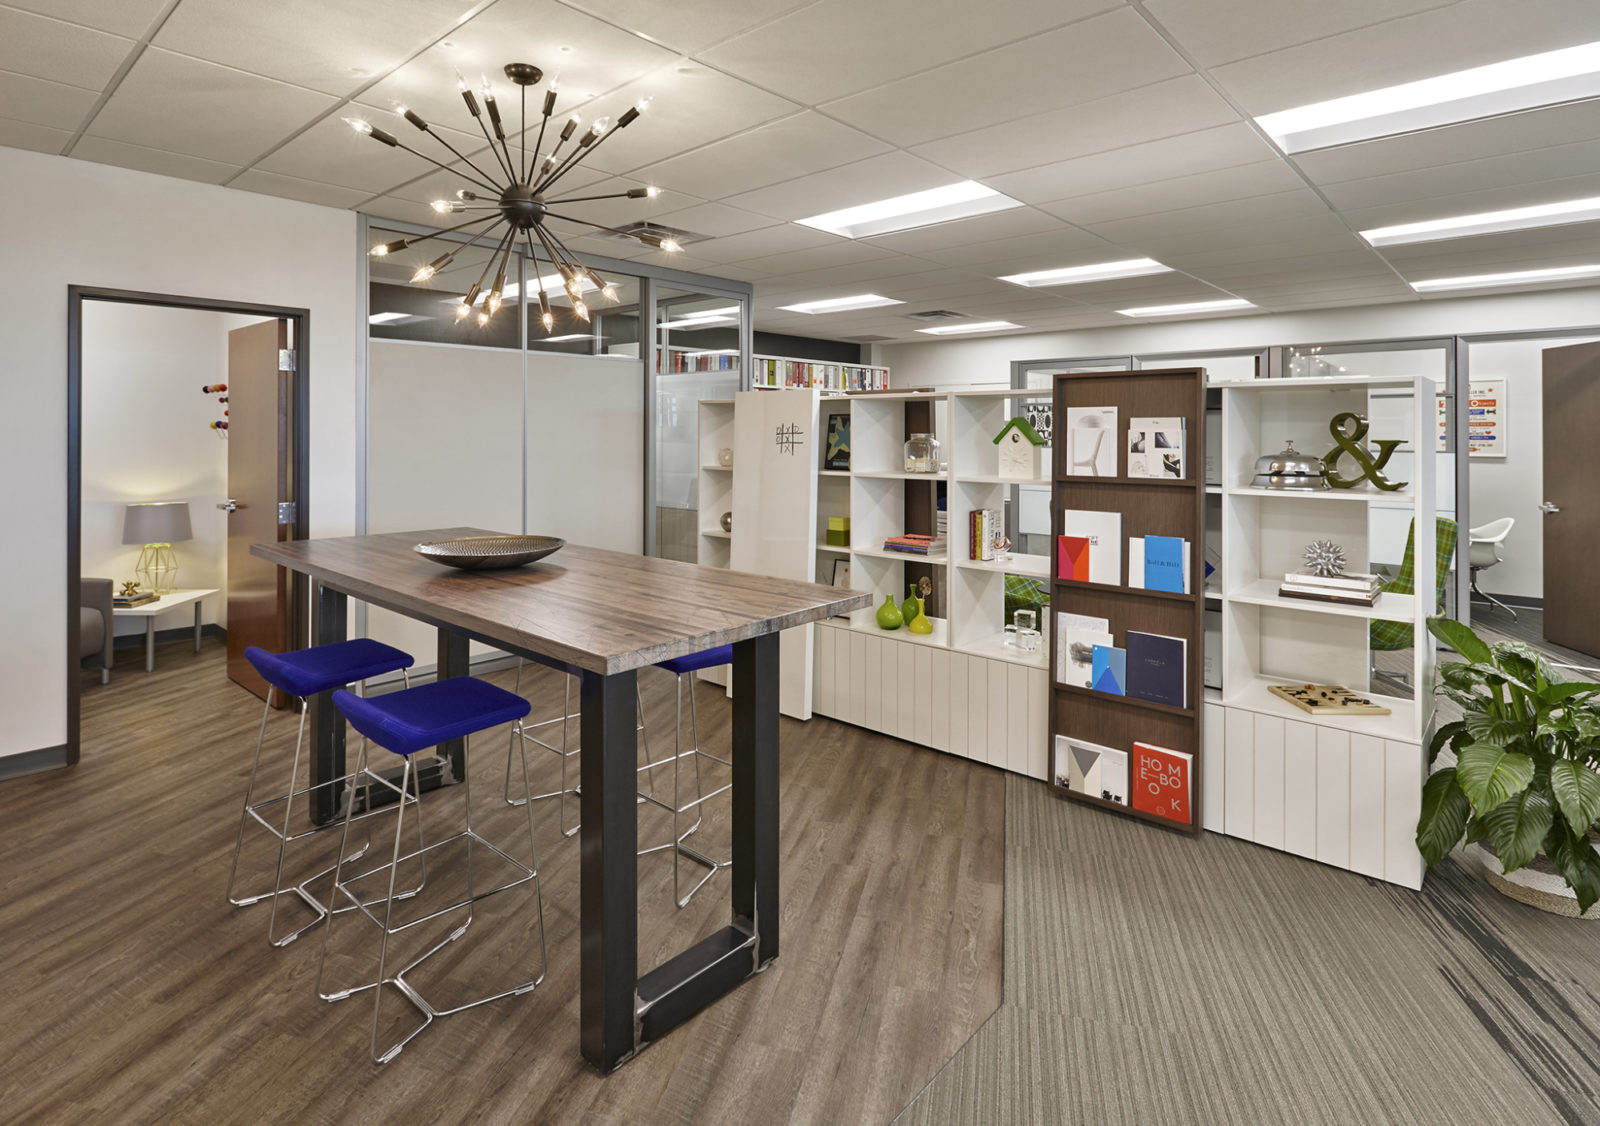 OW Showroom/Office: uptown high table space